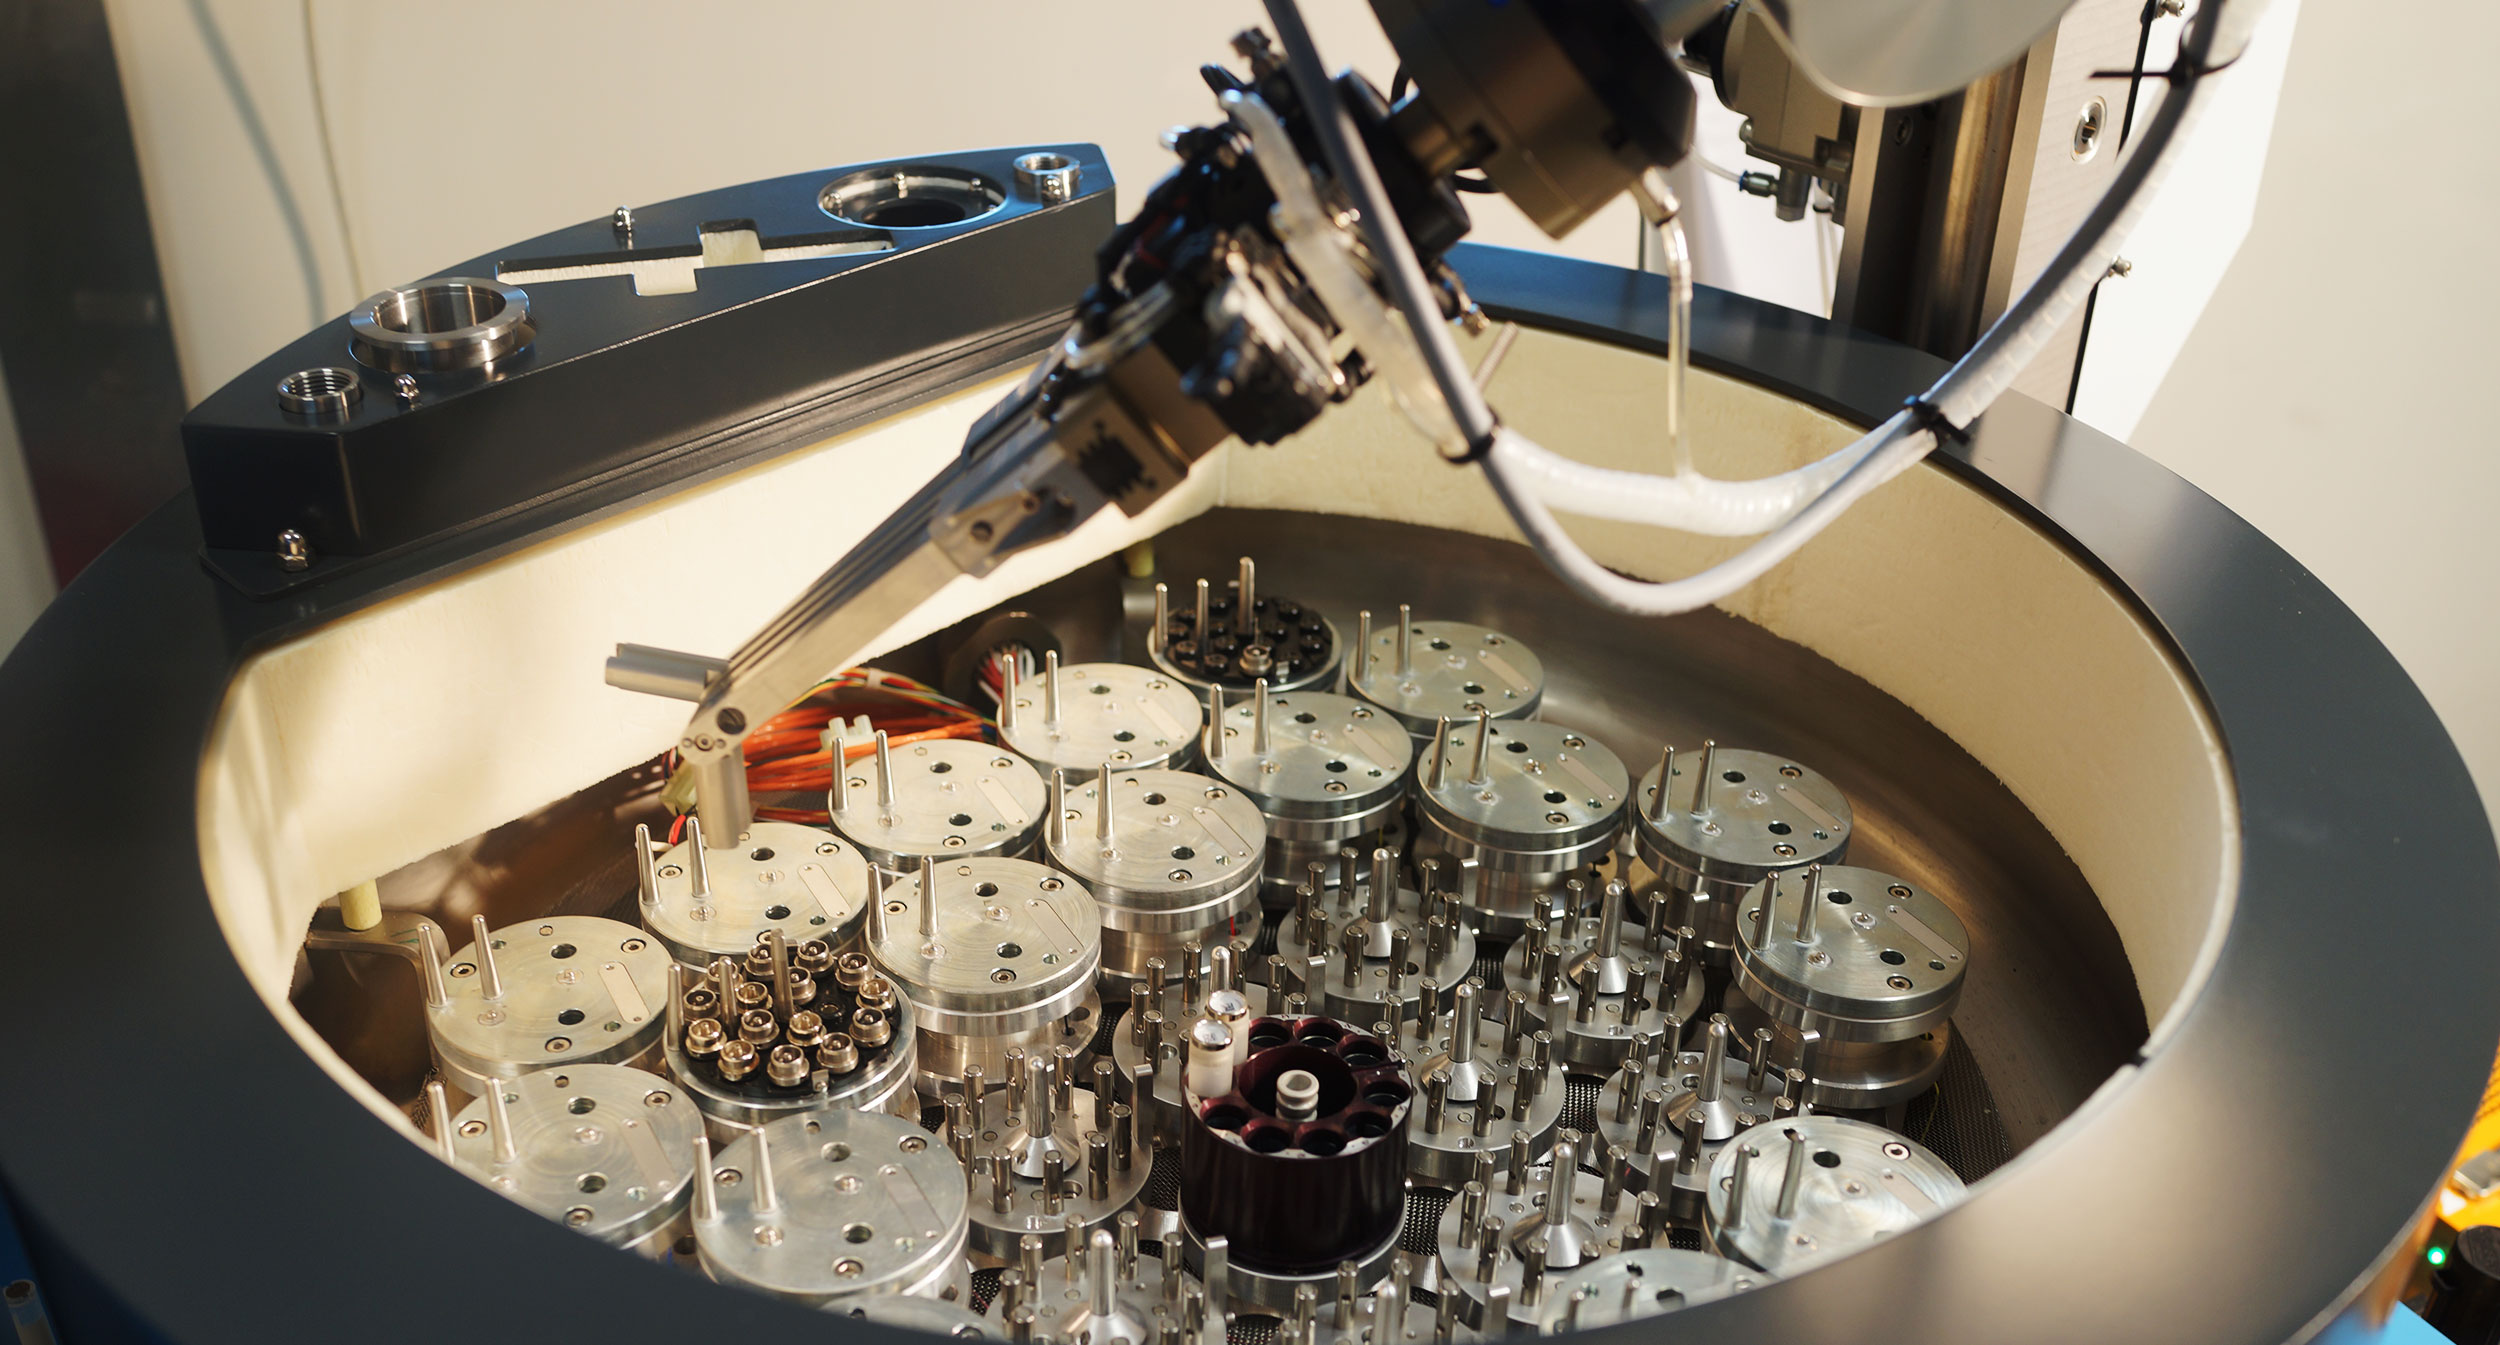 X-ray crystallography: Robotic sample changer